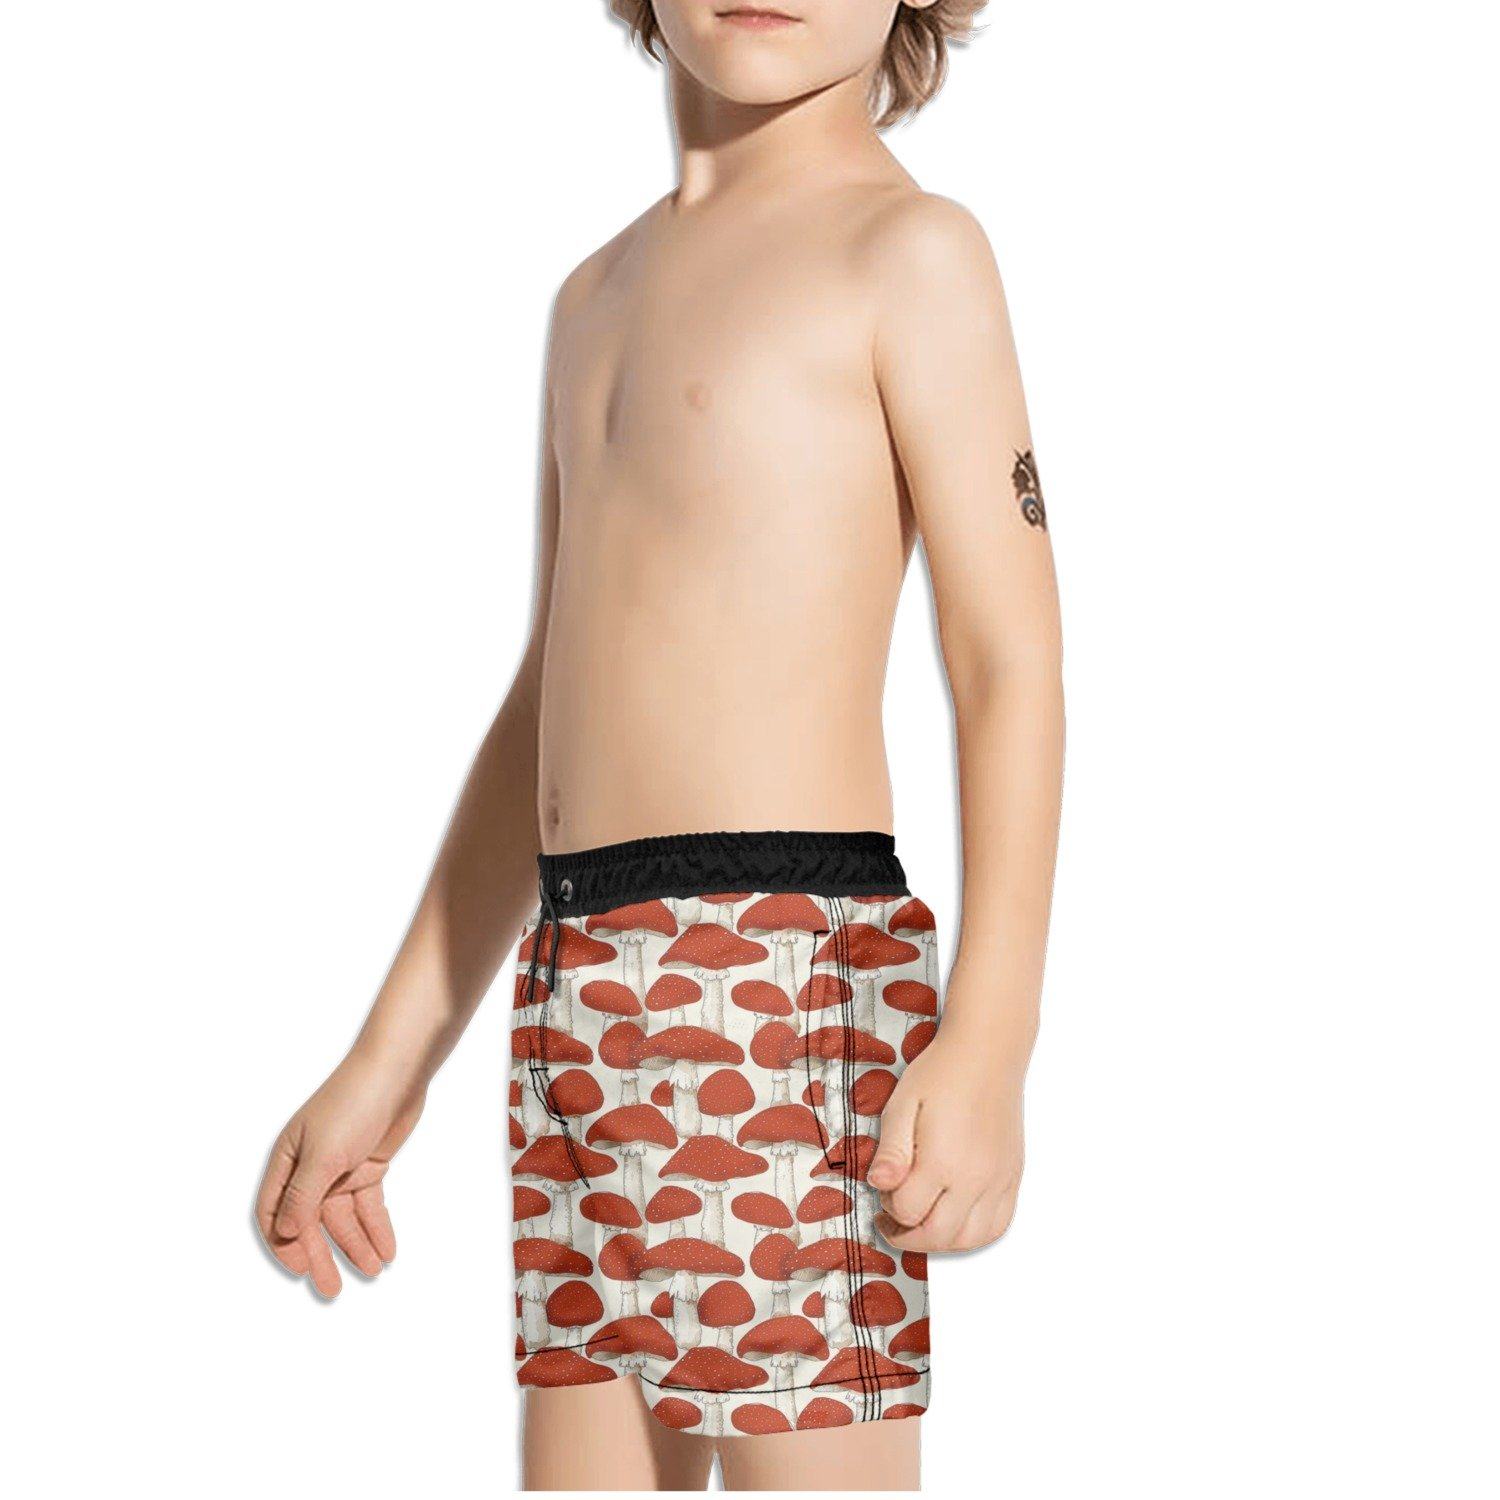 FullBo Red Mushroom Muscaria Mushroom Little Boys Short Swim Trunks Quick Dry Beach Shorts